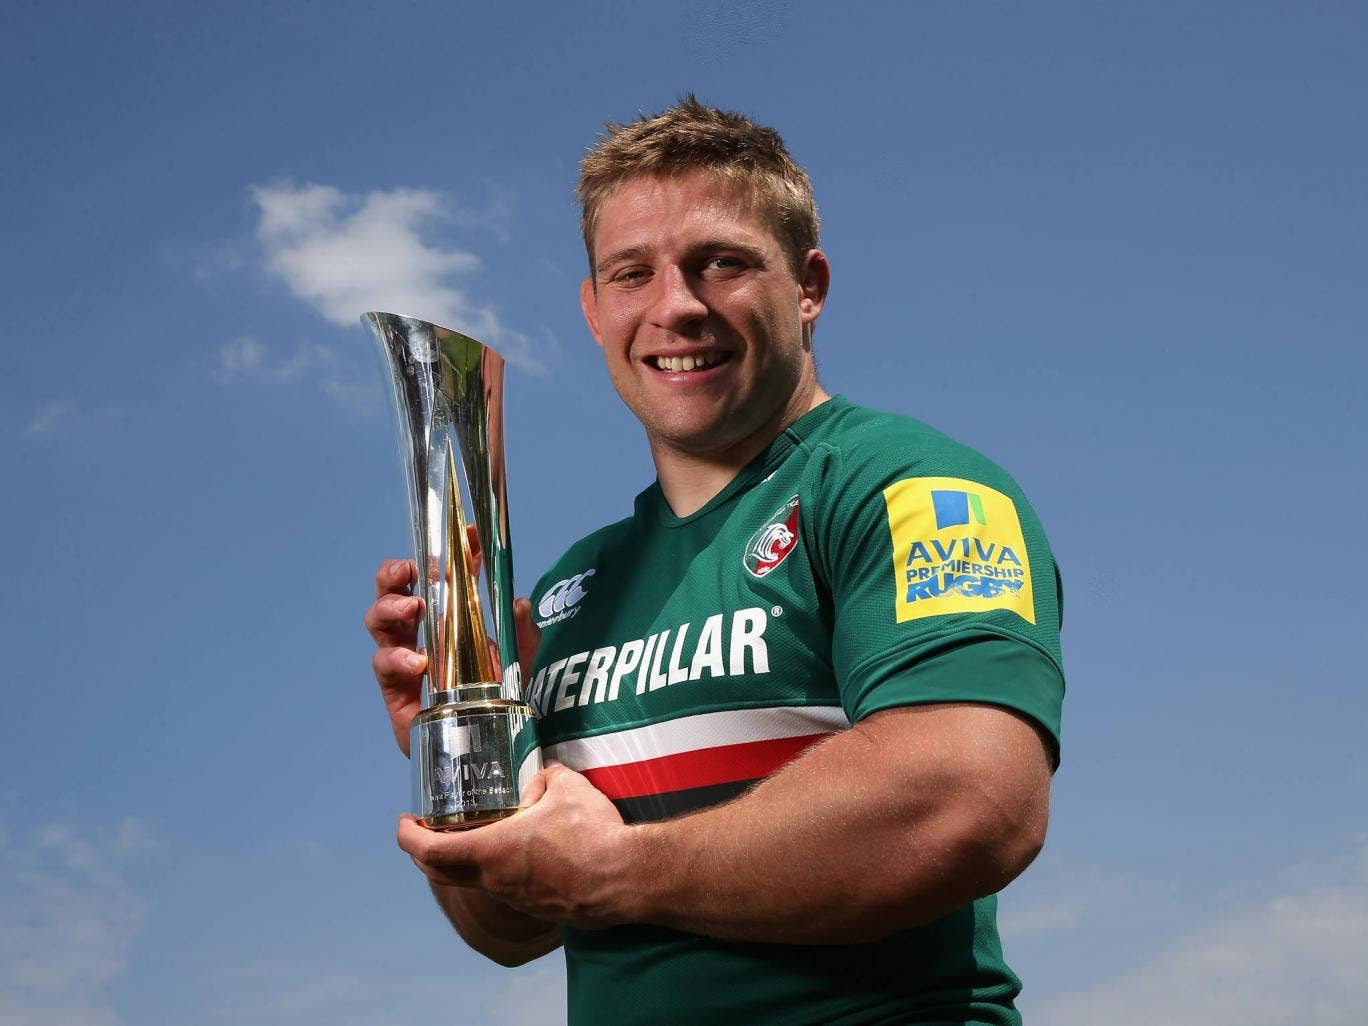 Tom Youngs of Leicester Tigers holds the Aviva Premiership Rugby Player of the Season trophy at the Leicester Tigers training ground